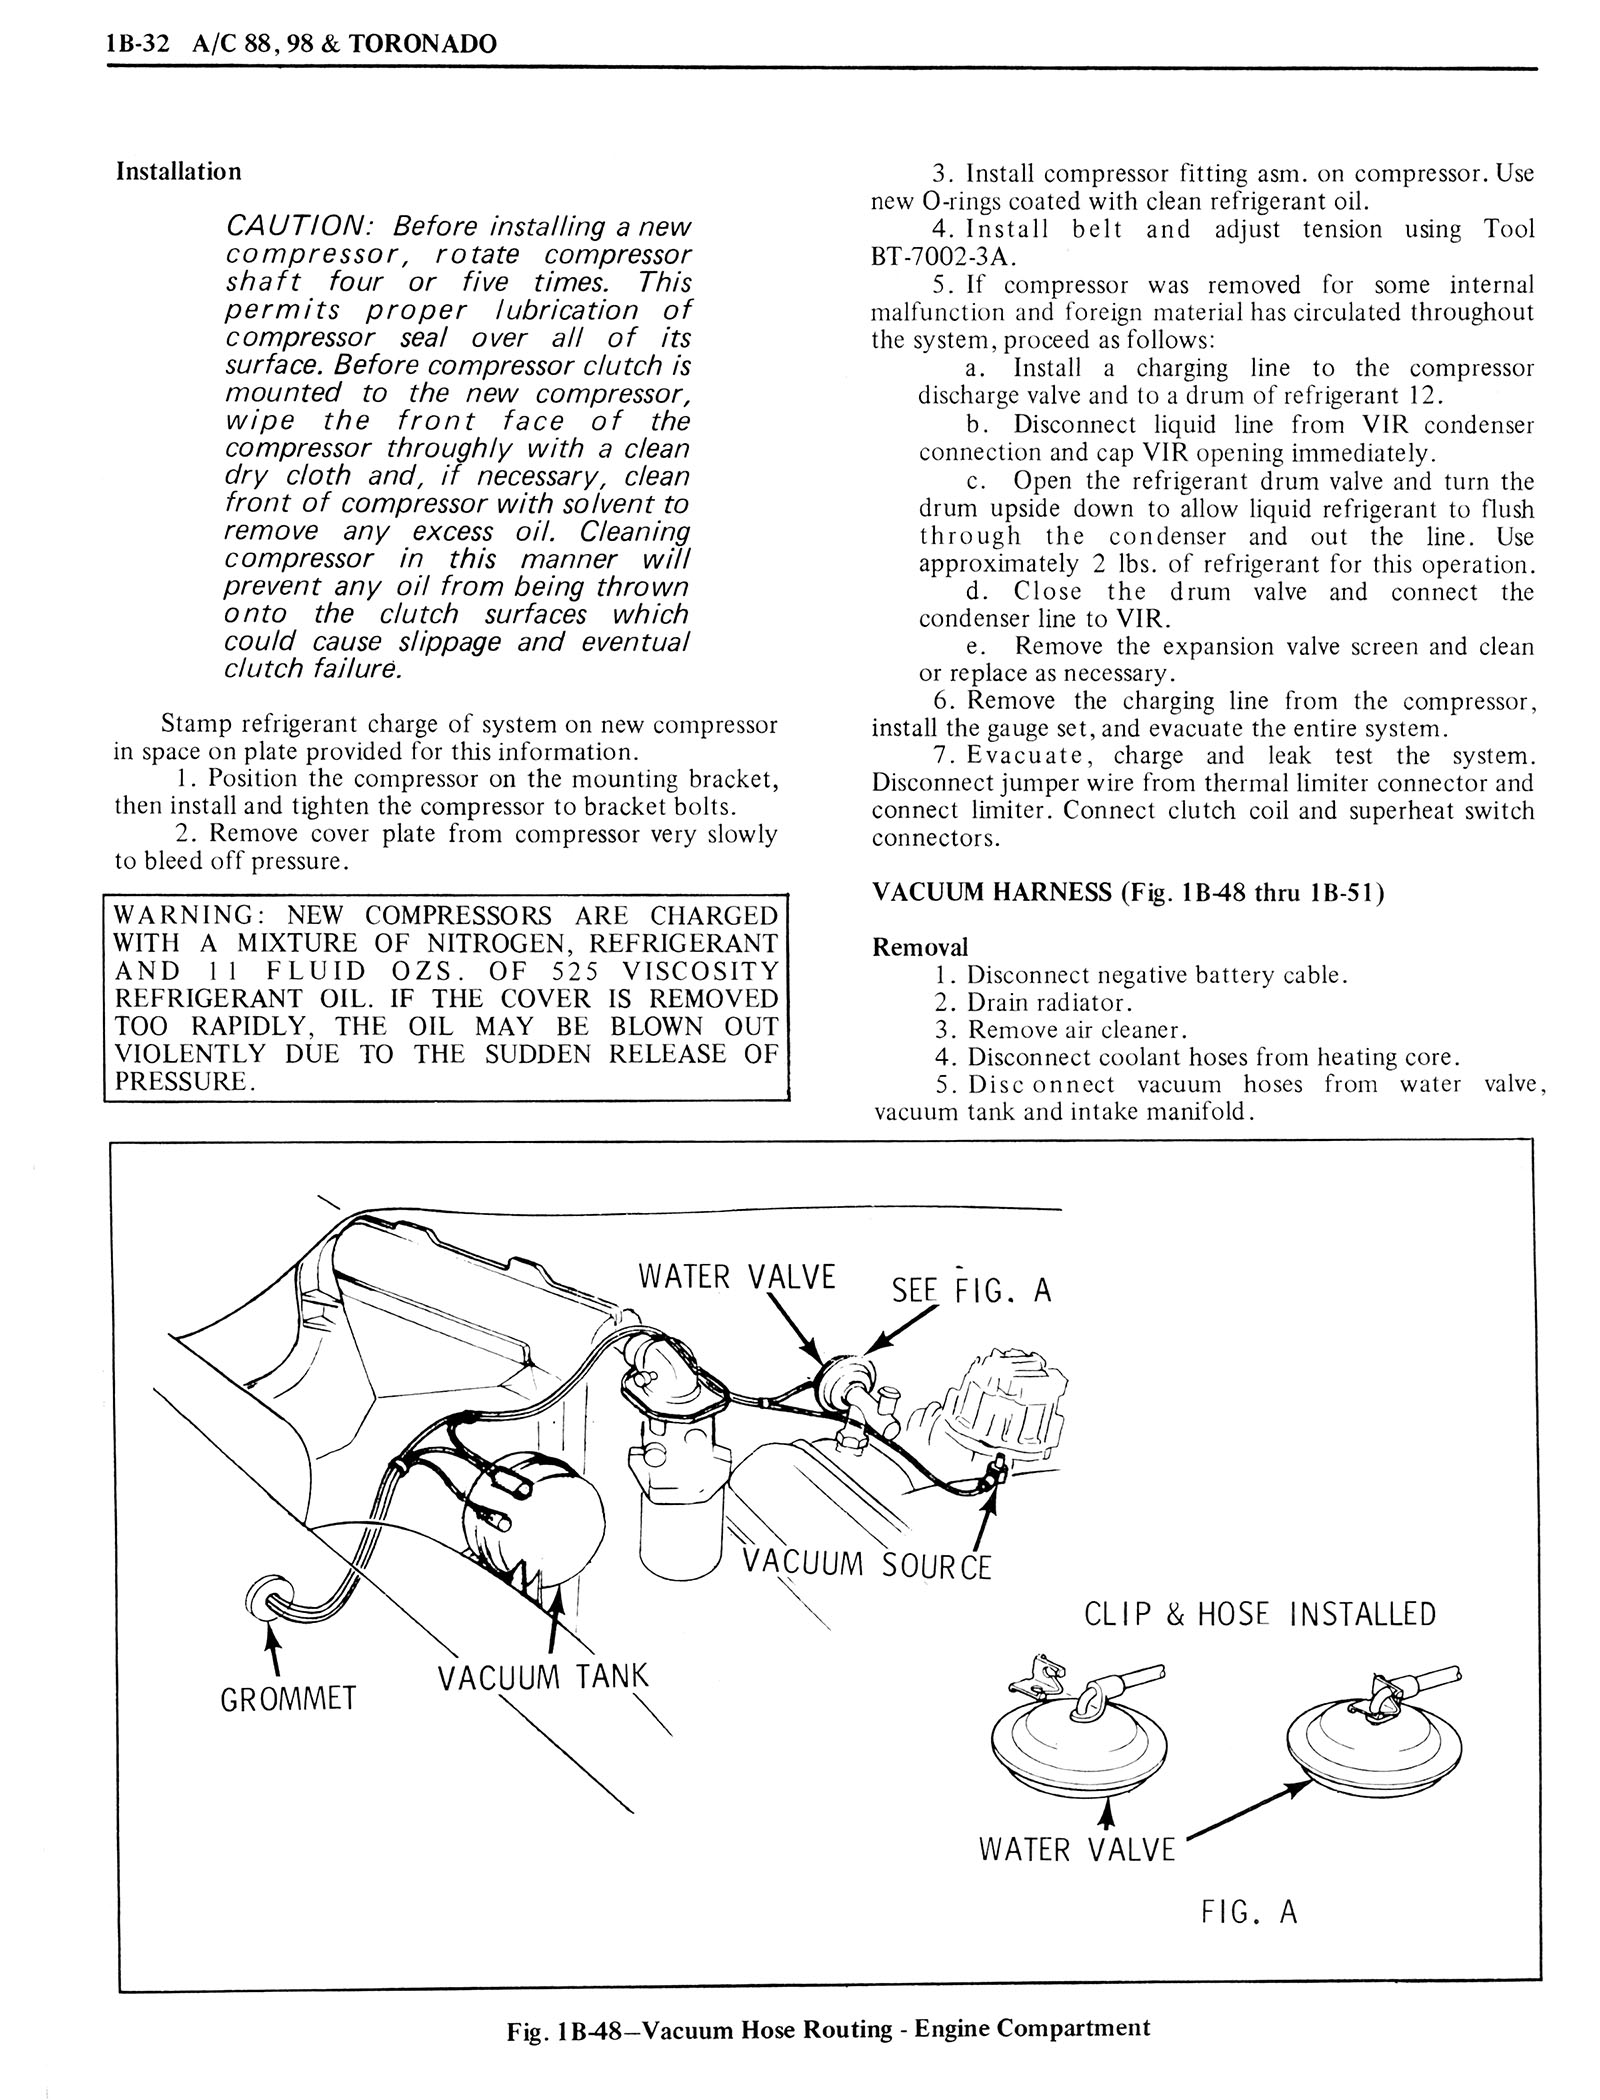 1976 Oldsmobile Service Manual page 130 of 1390